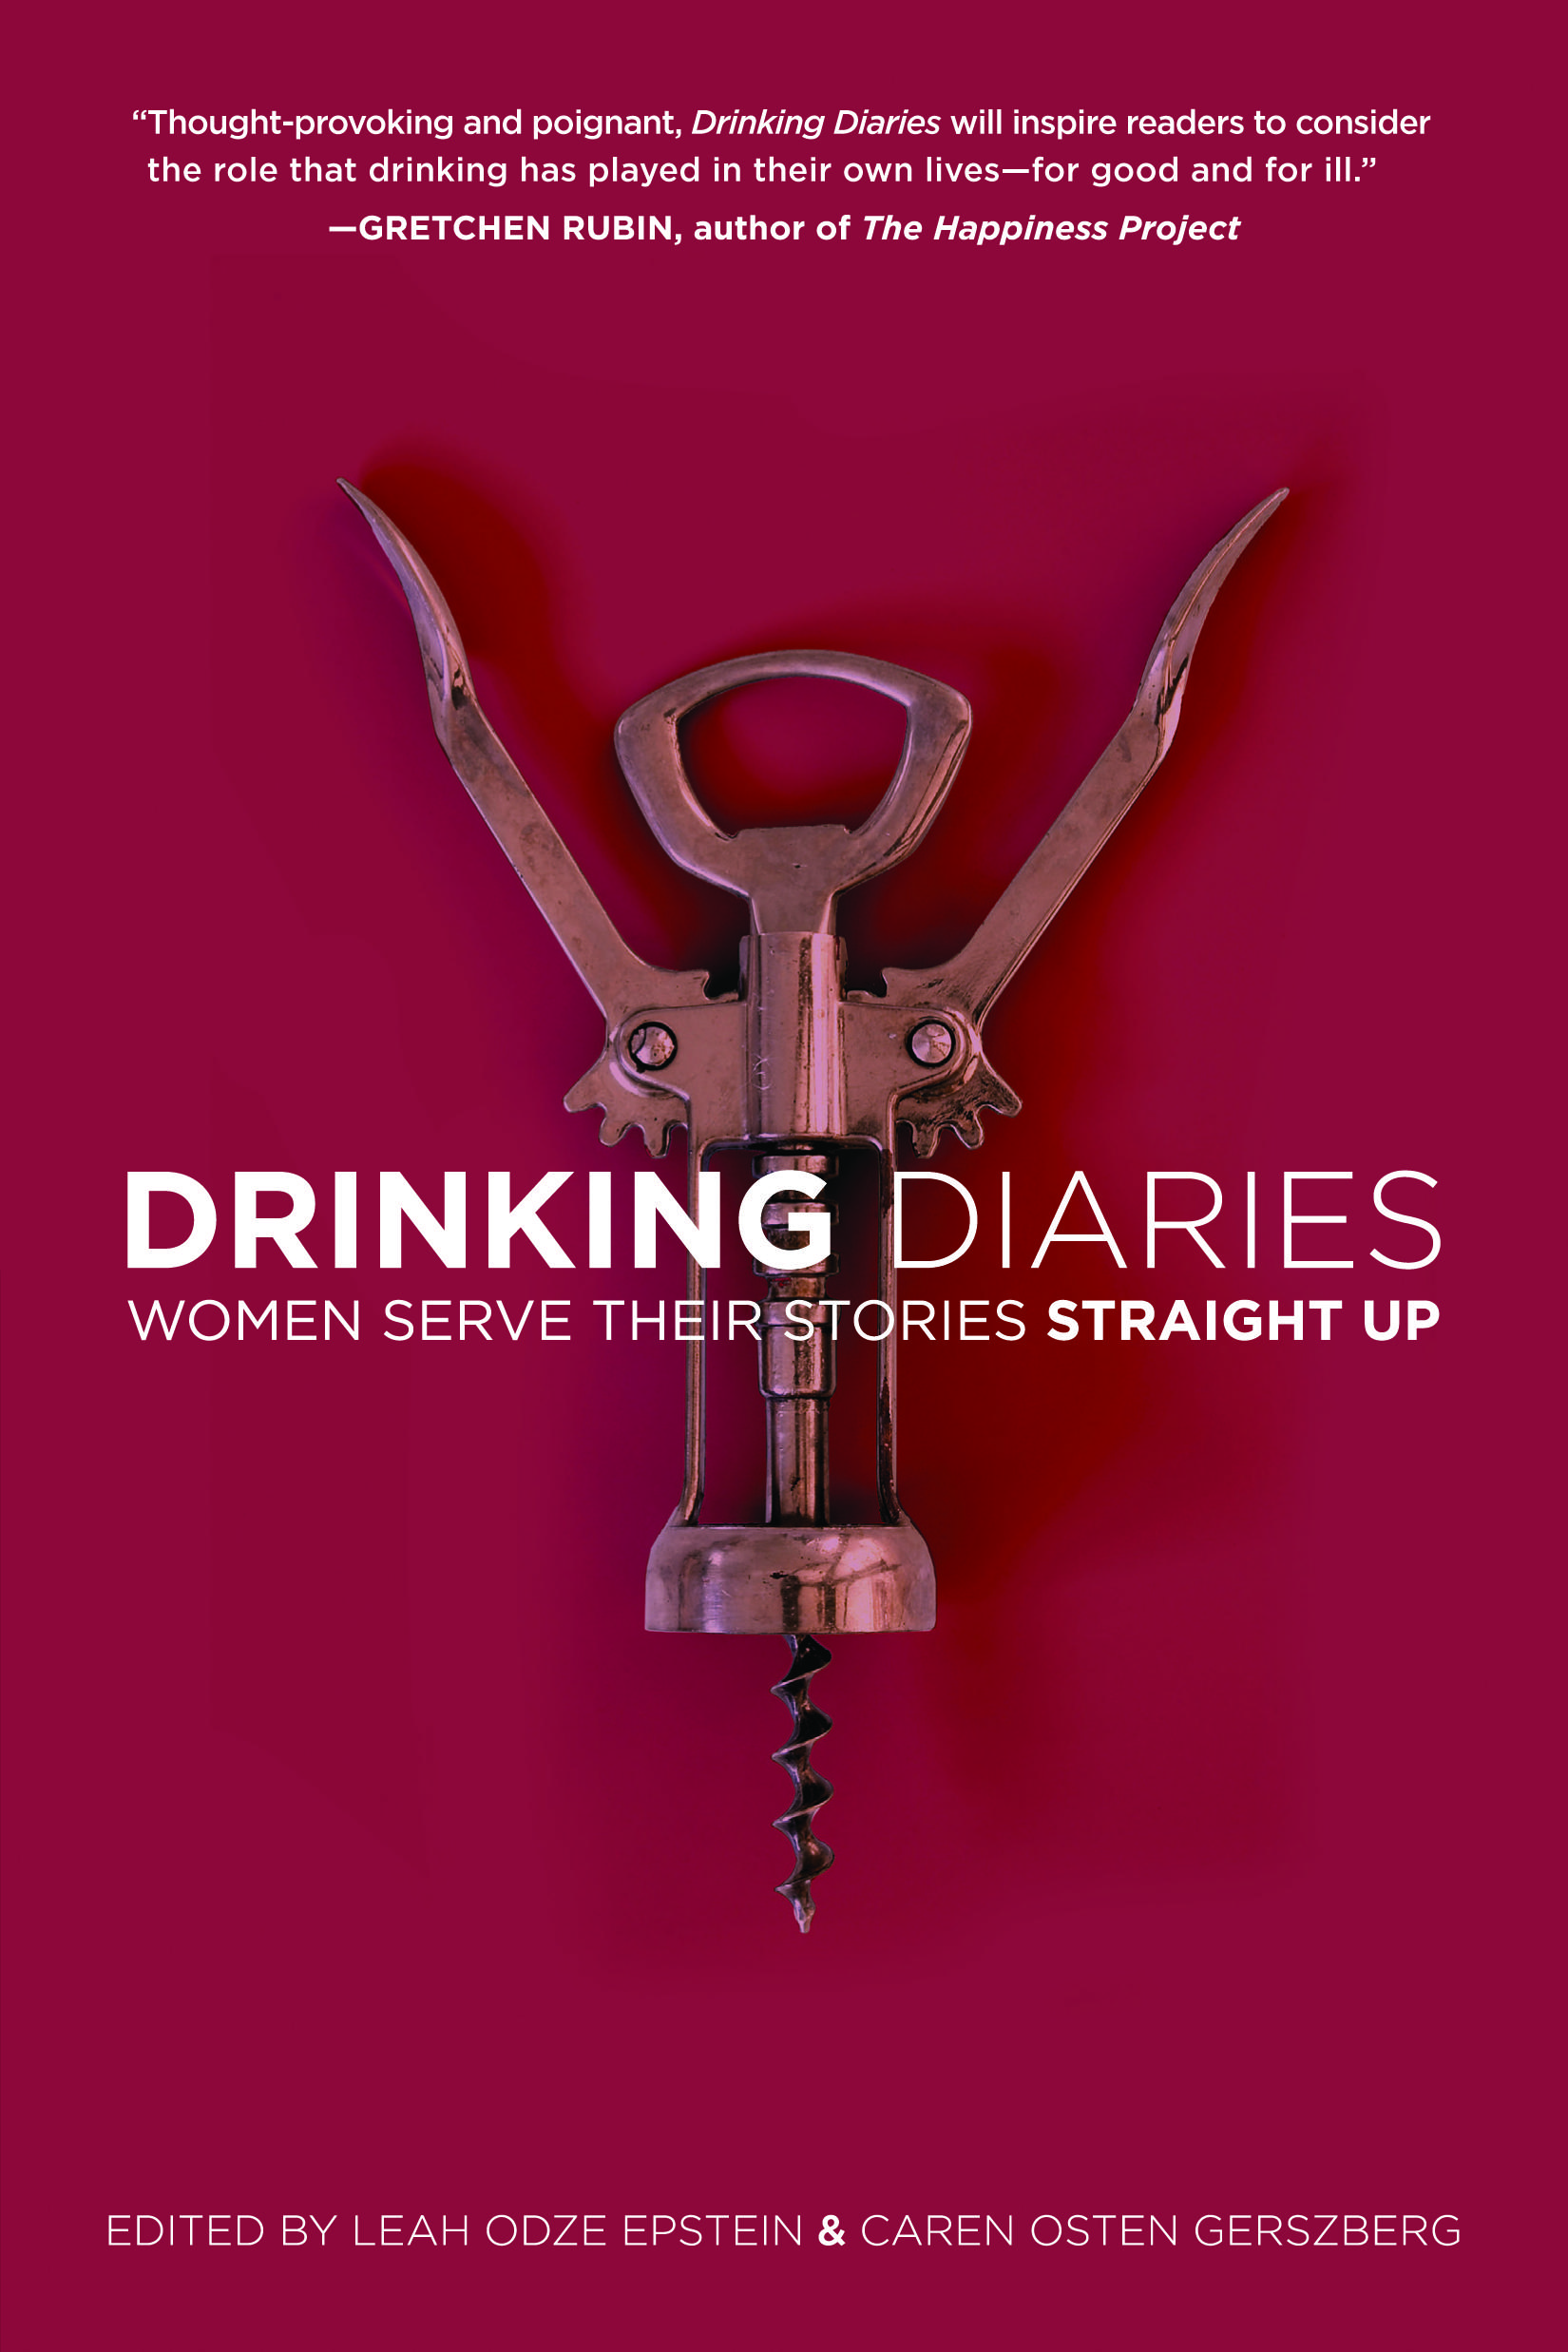 Book cover of Drinking Diaries by Caren Osten